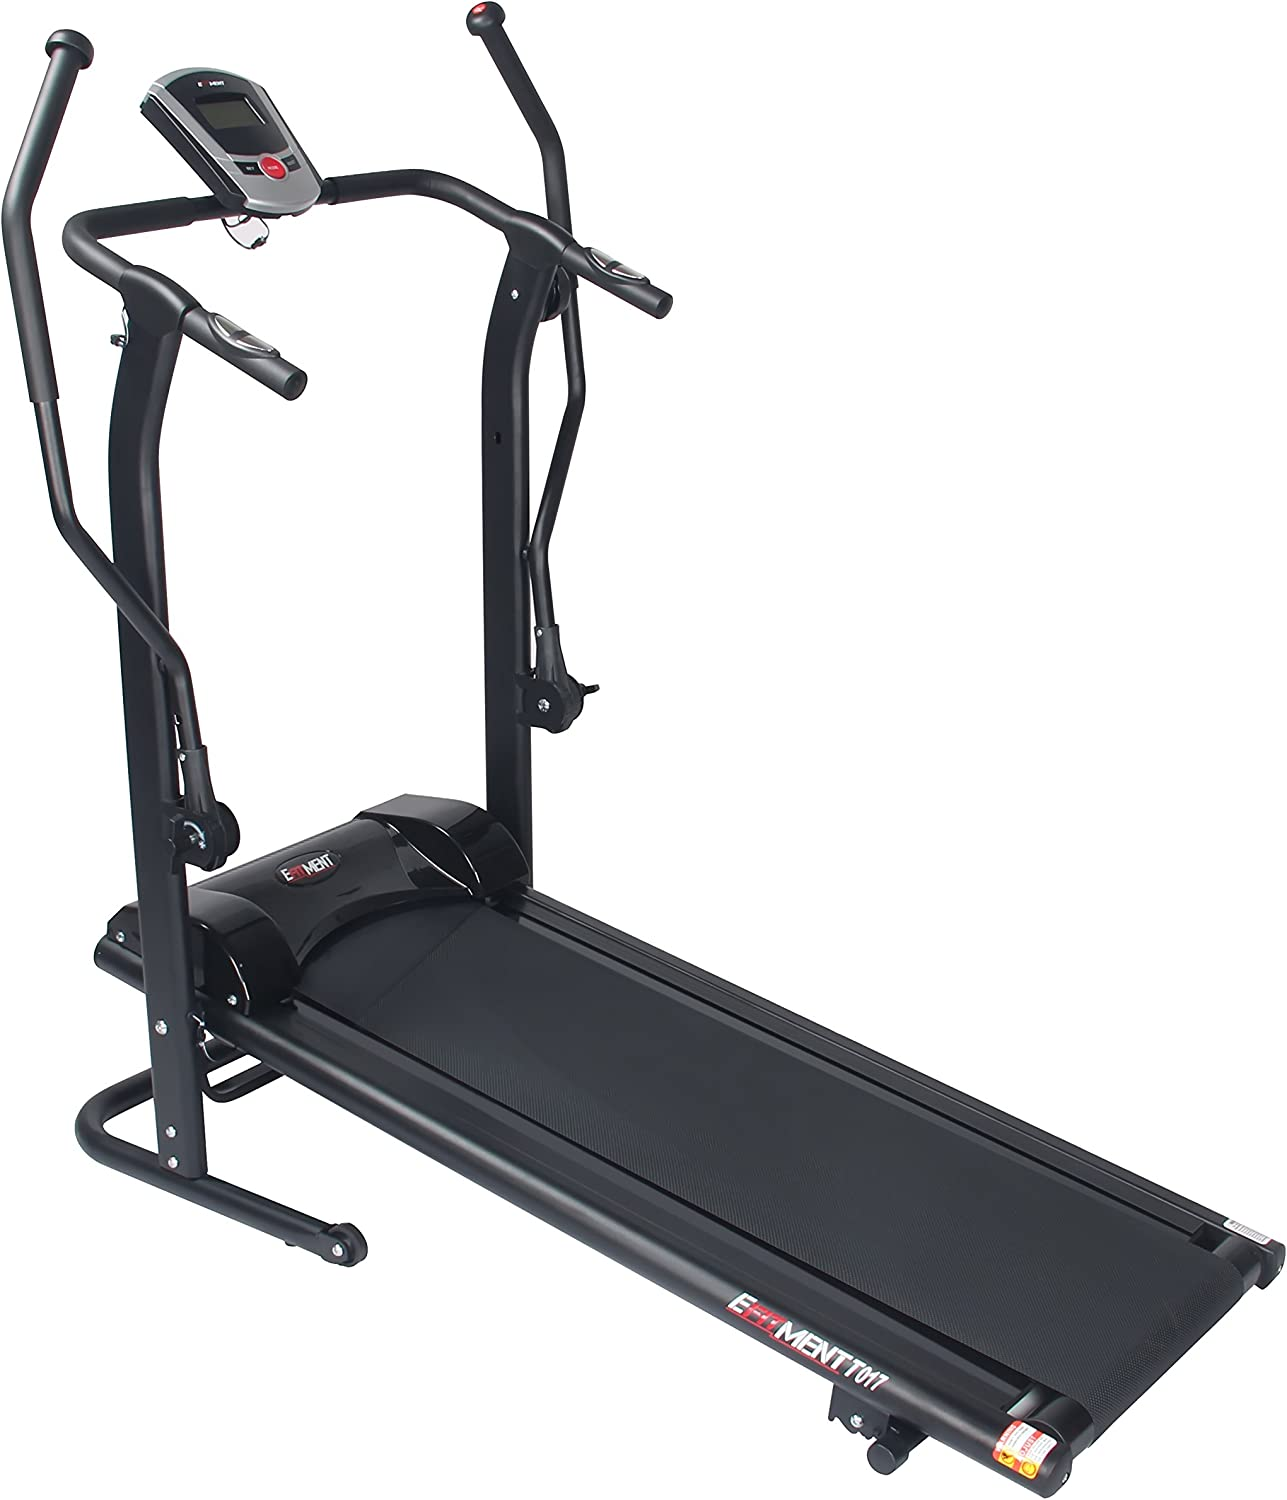 EFITMENT Adjustable Incline Magnetic discount Manual All items in the store Pulse Treadmill Mo w